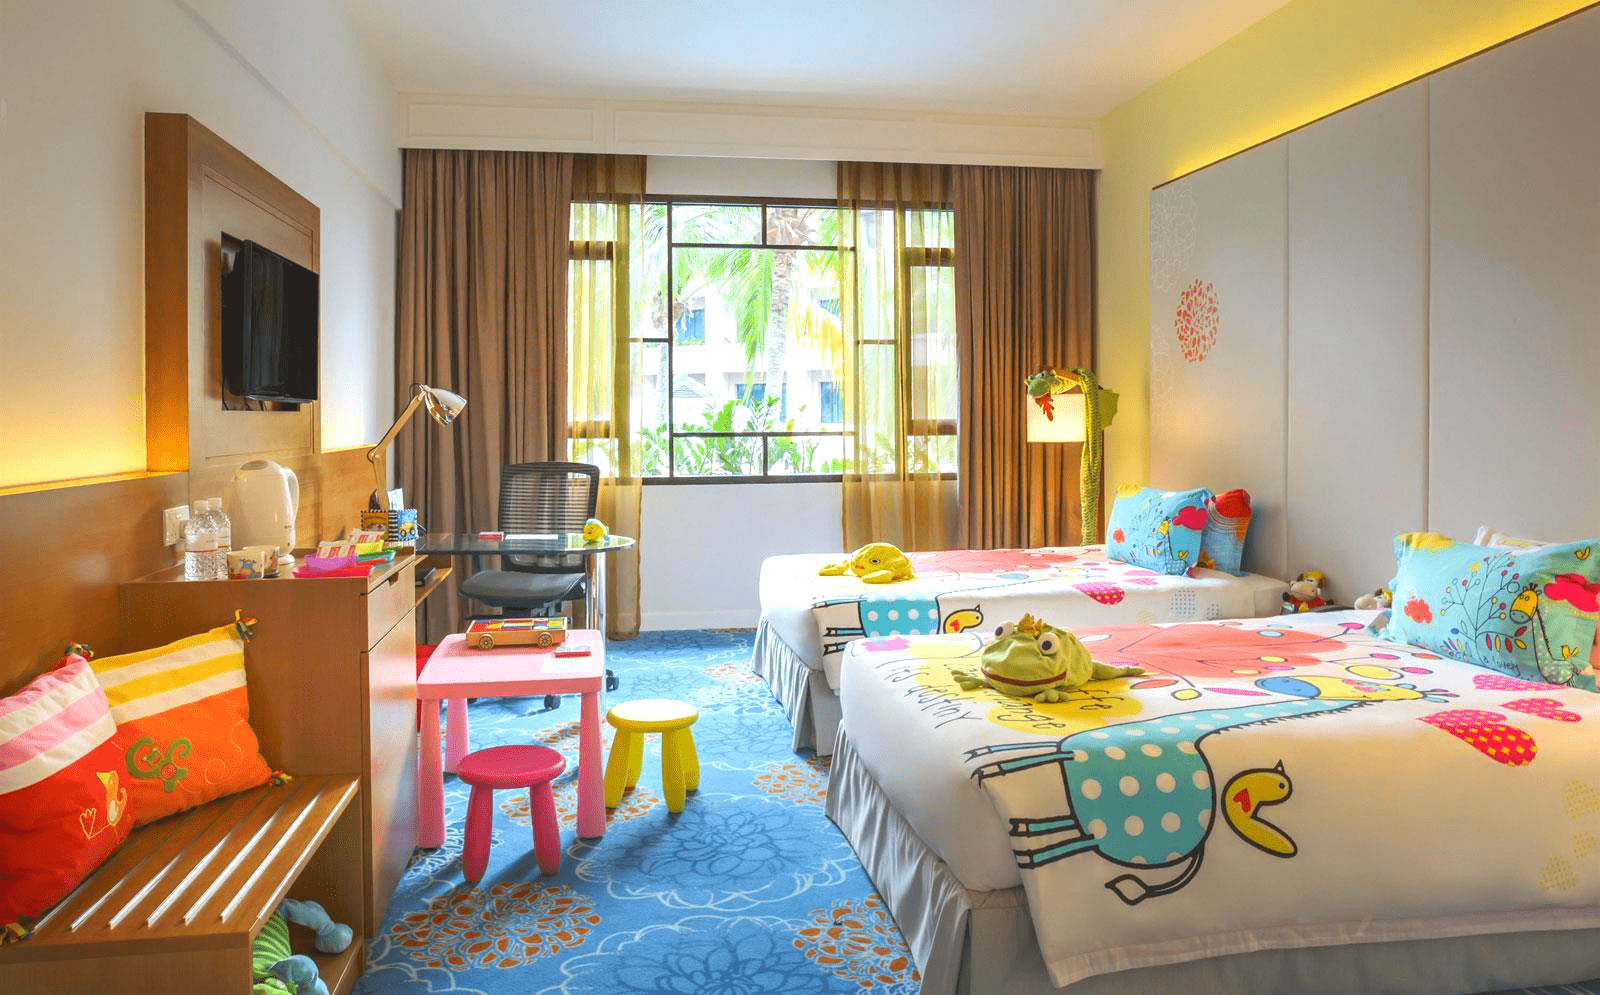 8 Family-Friendly Hotels in Singapore Perfect For A Staycation This June Holiday!